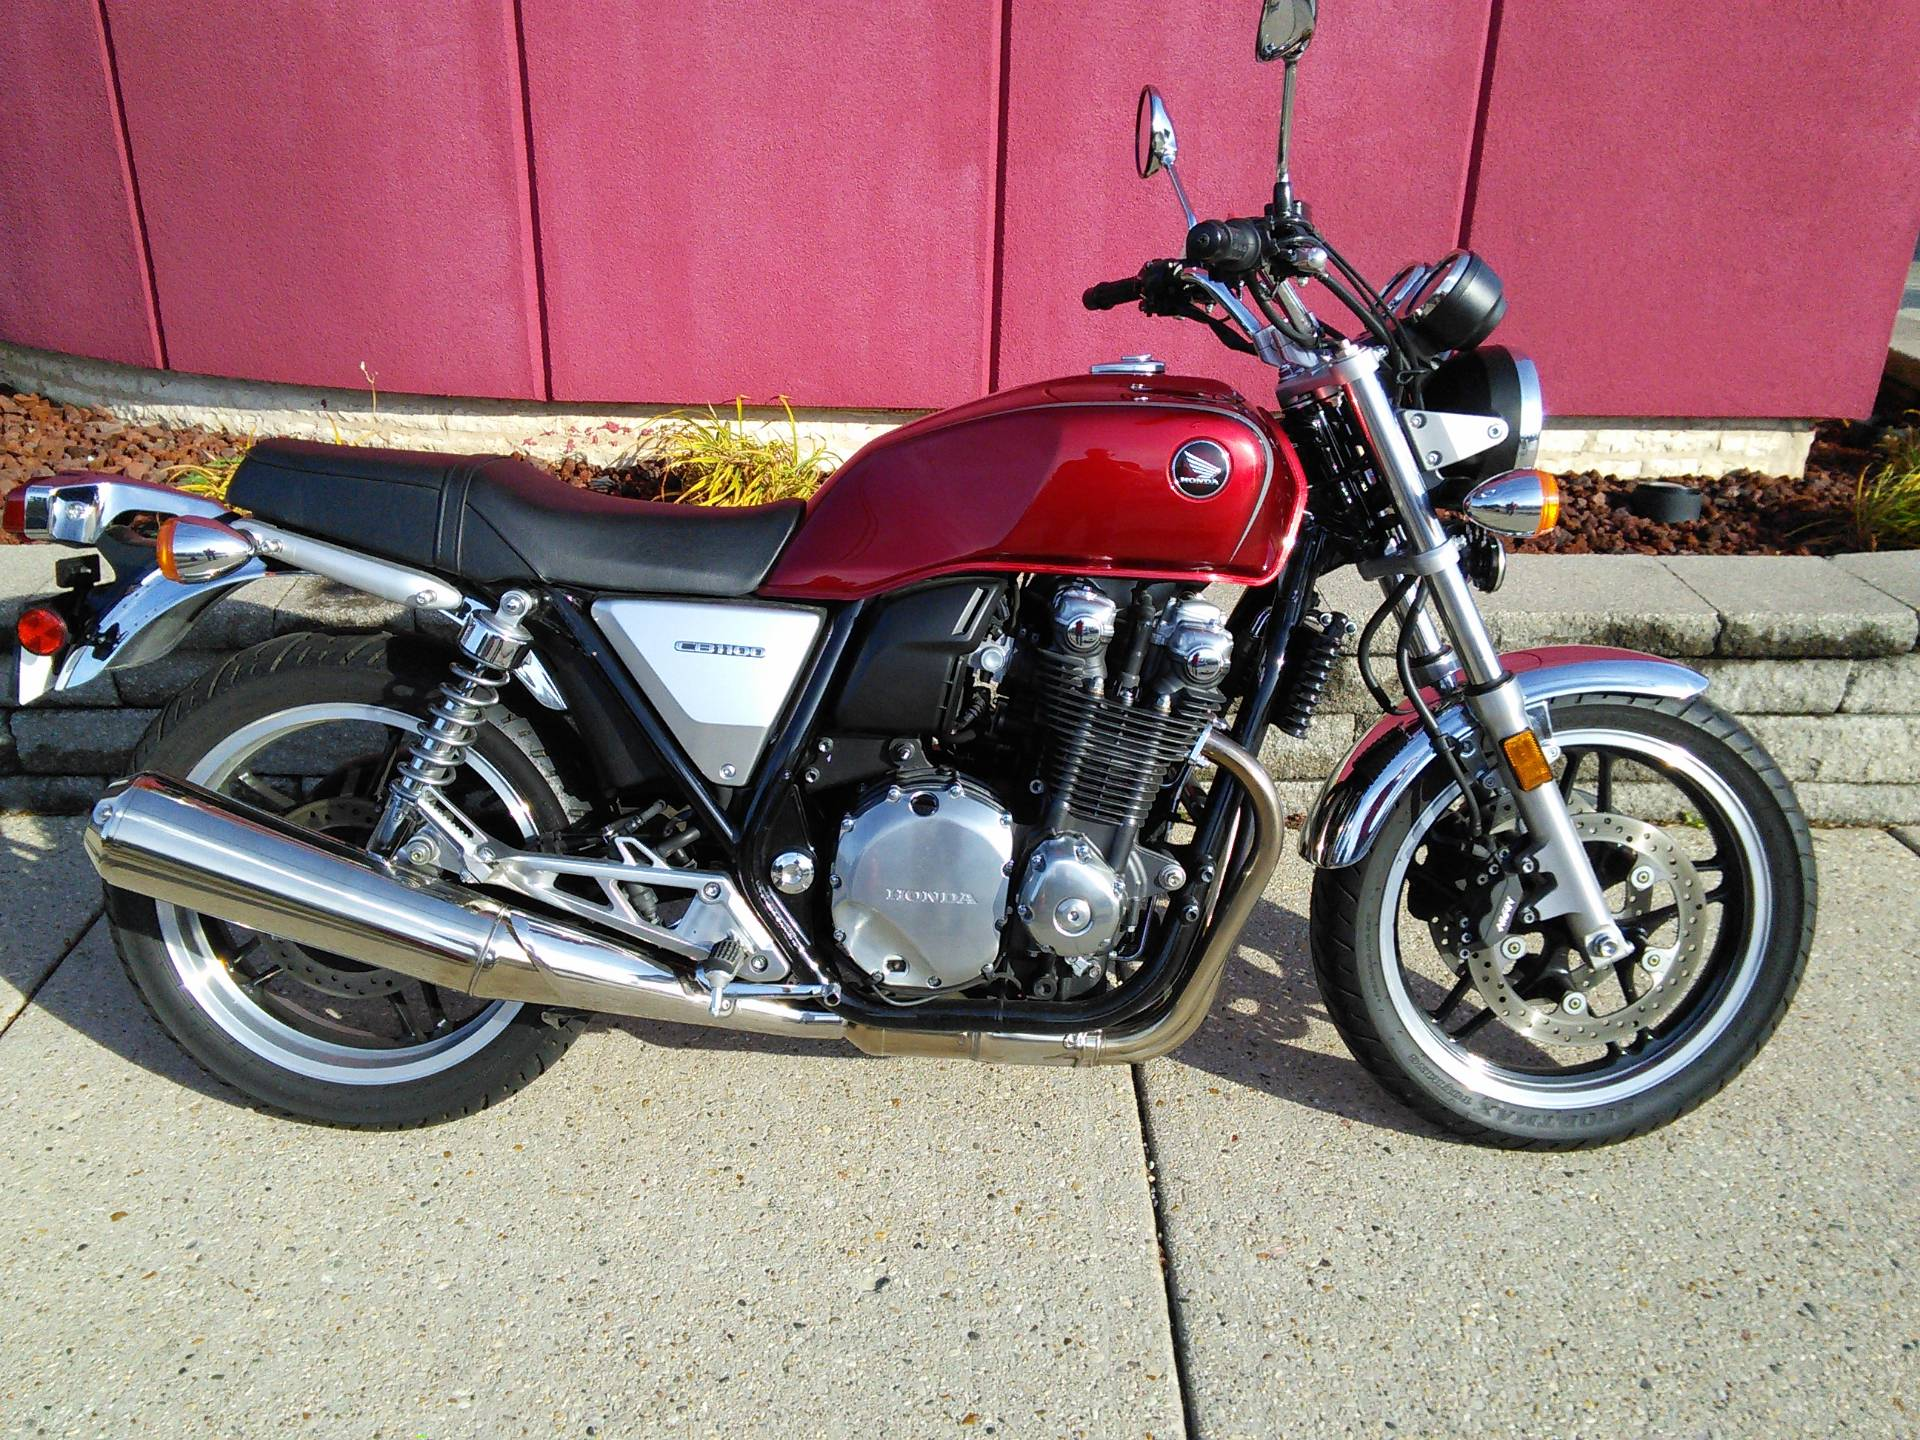 Used 2013 honda cb1100 motorcycles in des plaines il for Honda des plaines